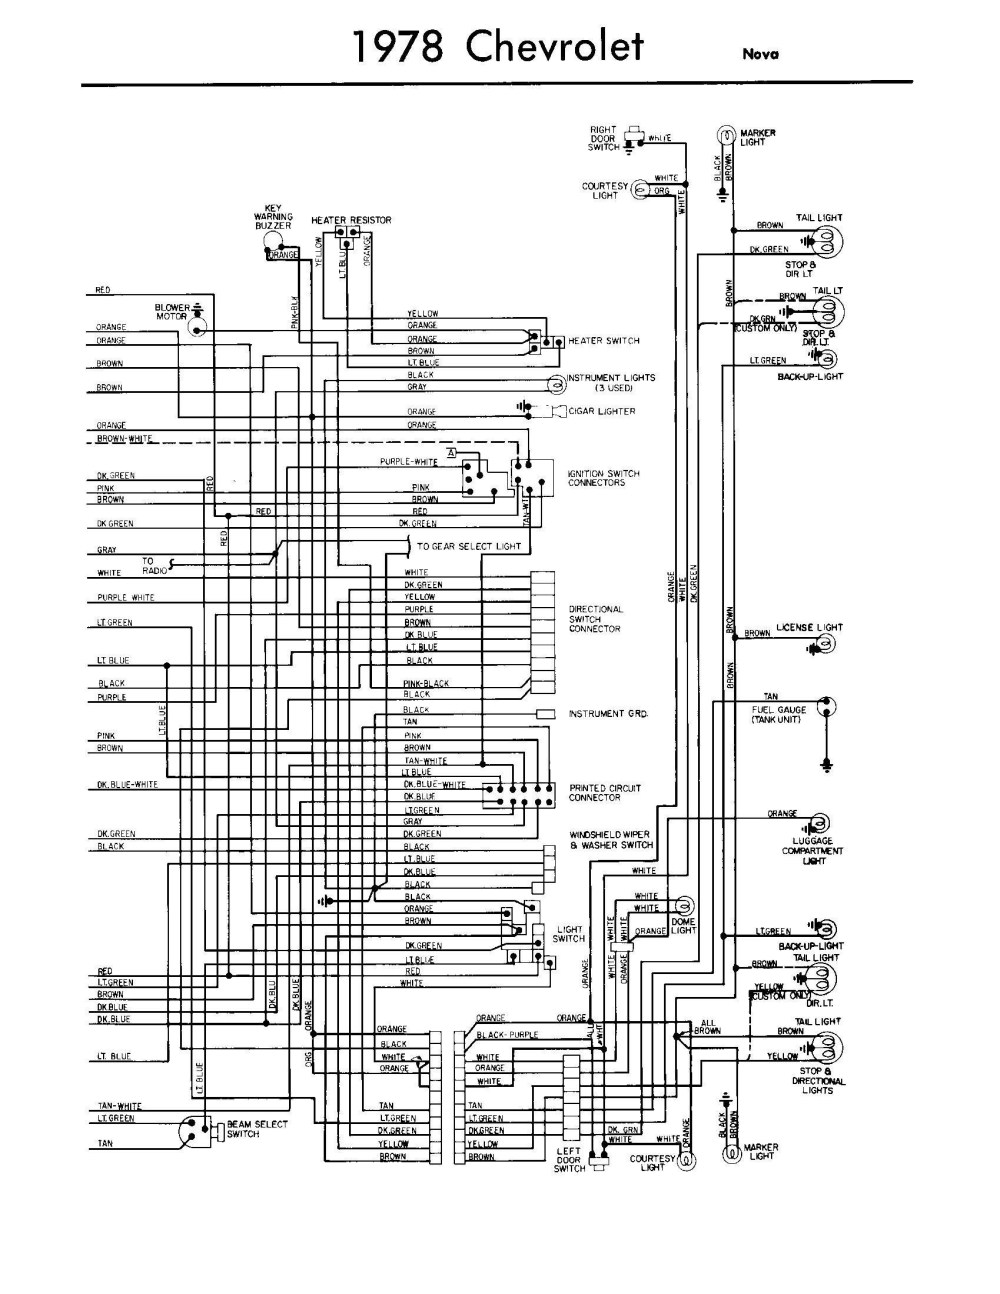 medium resolution of 78 gm stereo wiring diagrams wiring diagram third level 1978 corvette 25th anniversary 1978 corvette stereo wiring diagram